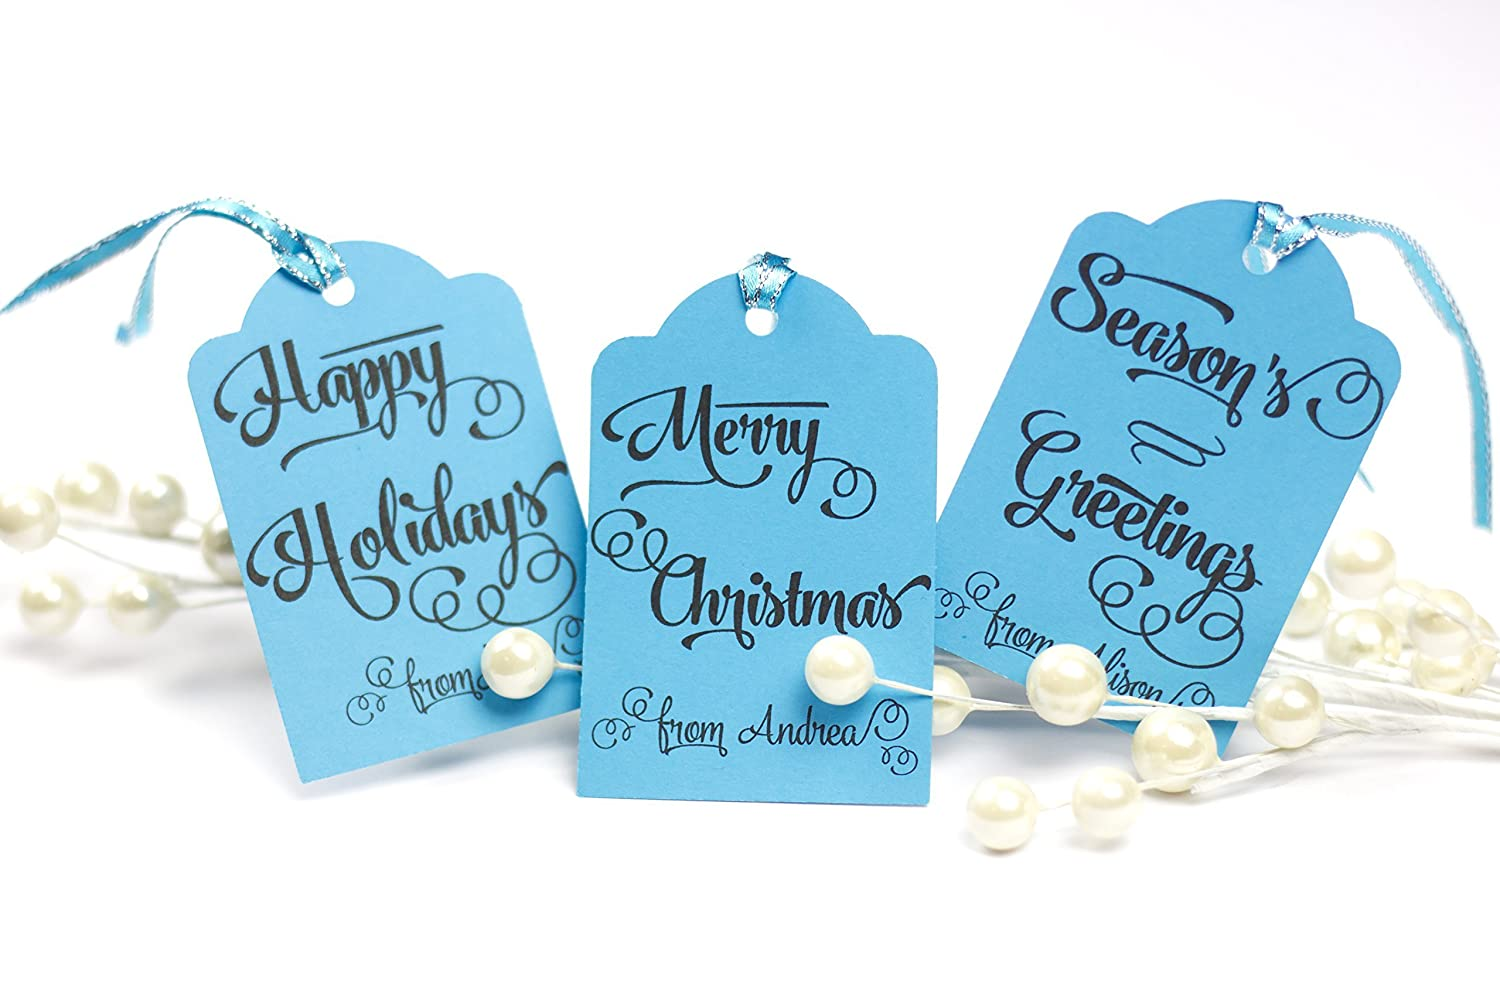 ce8a2a1b25196 Amazon.com: Personalized Gift Tags Christmas Whimsical, Personalized ...